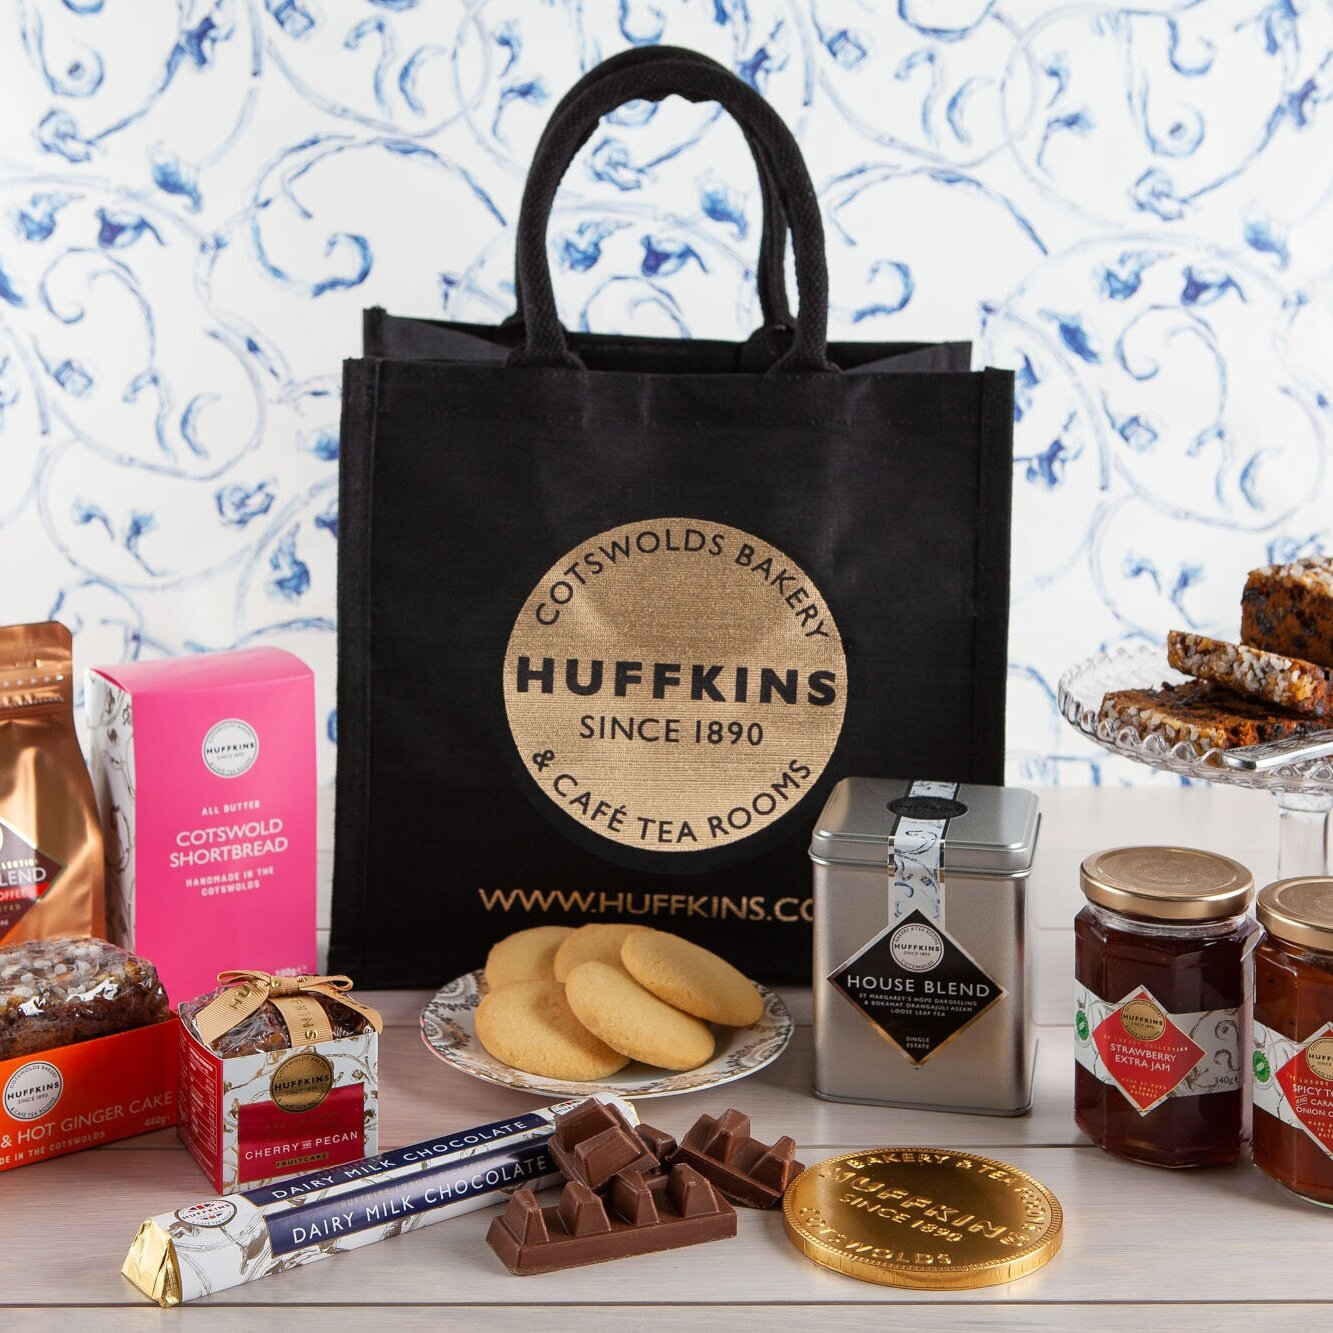 Cake gifts - It's in the bag.